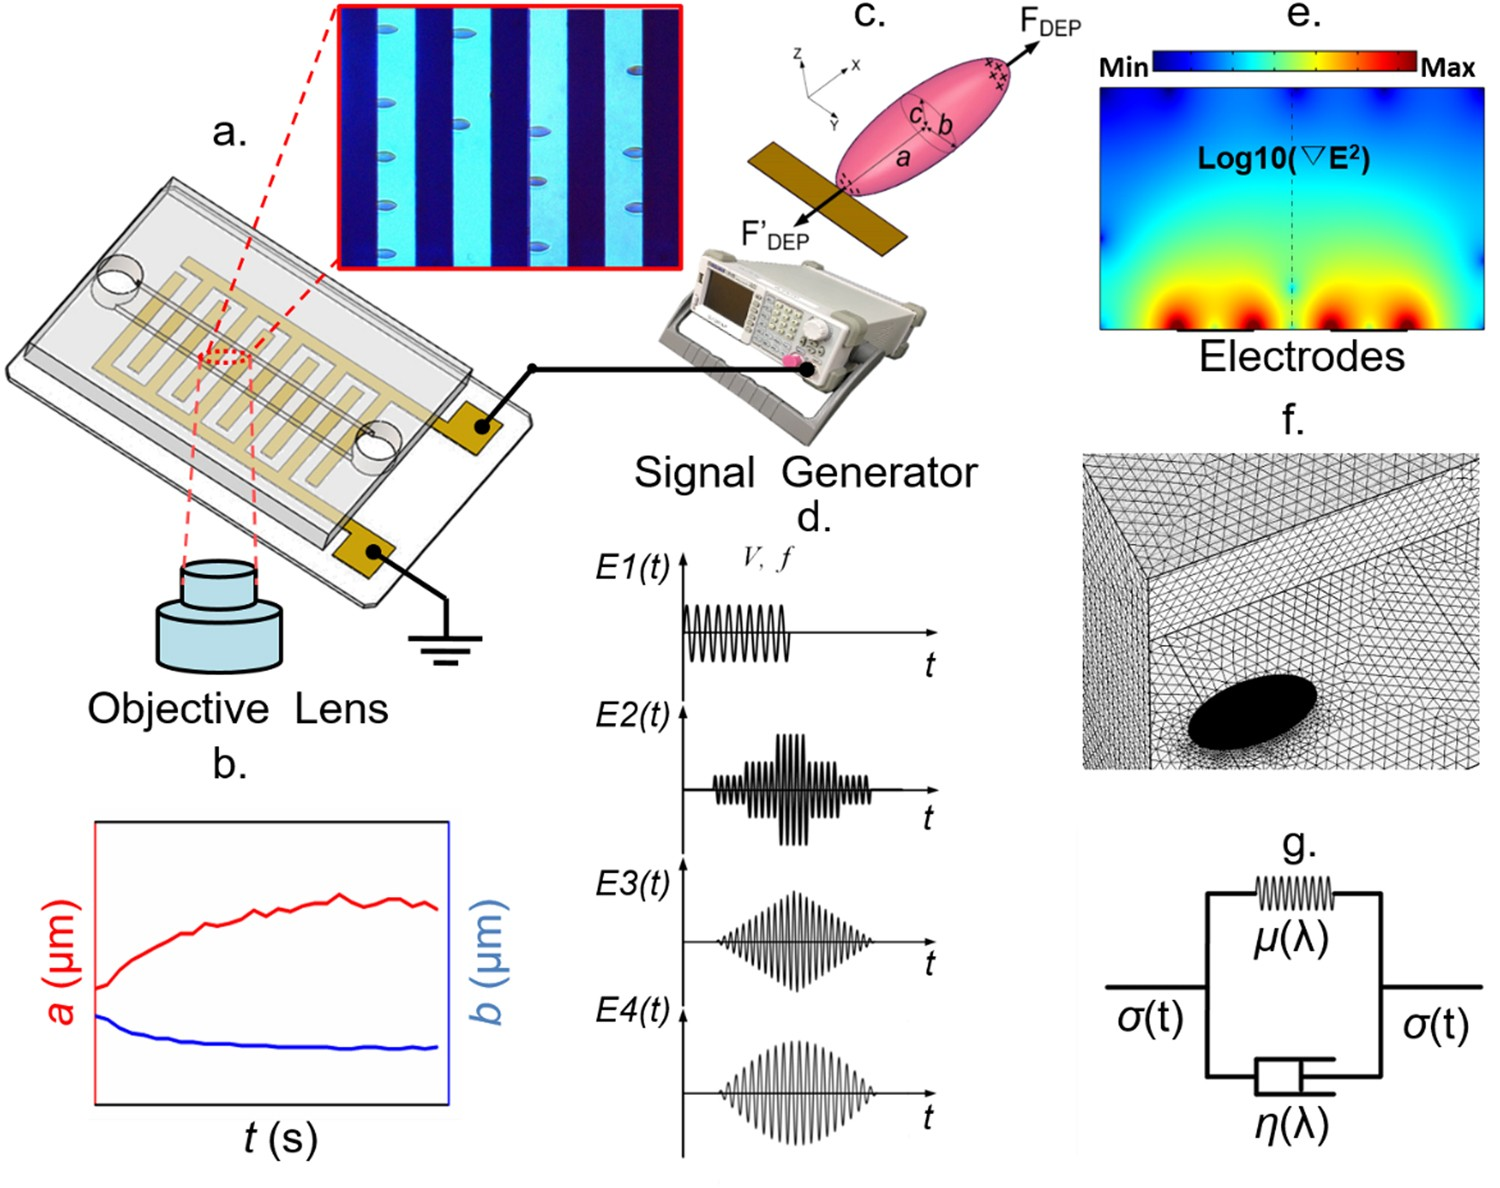 Modeling Erythrocyte Electrodeformation In Response To Amplitude Mechanics Shear Force And Bending Moment Diagrams Using Matlab Modulated Electric Waveforms Scientific Reports